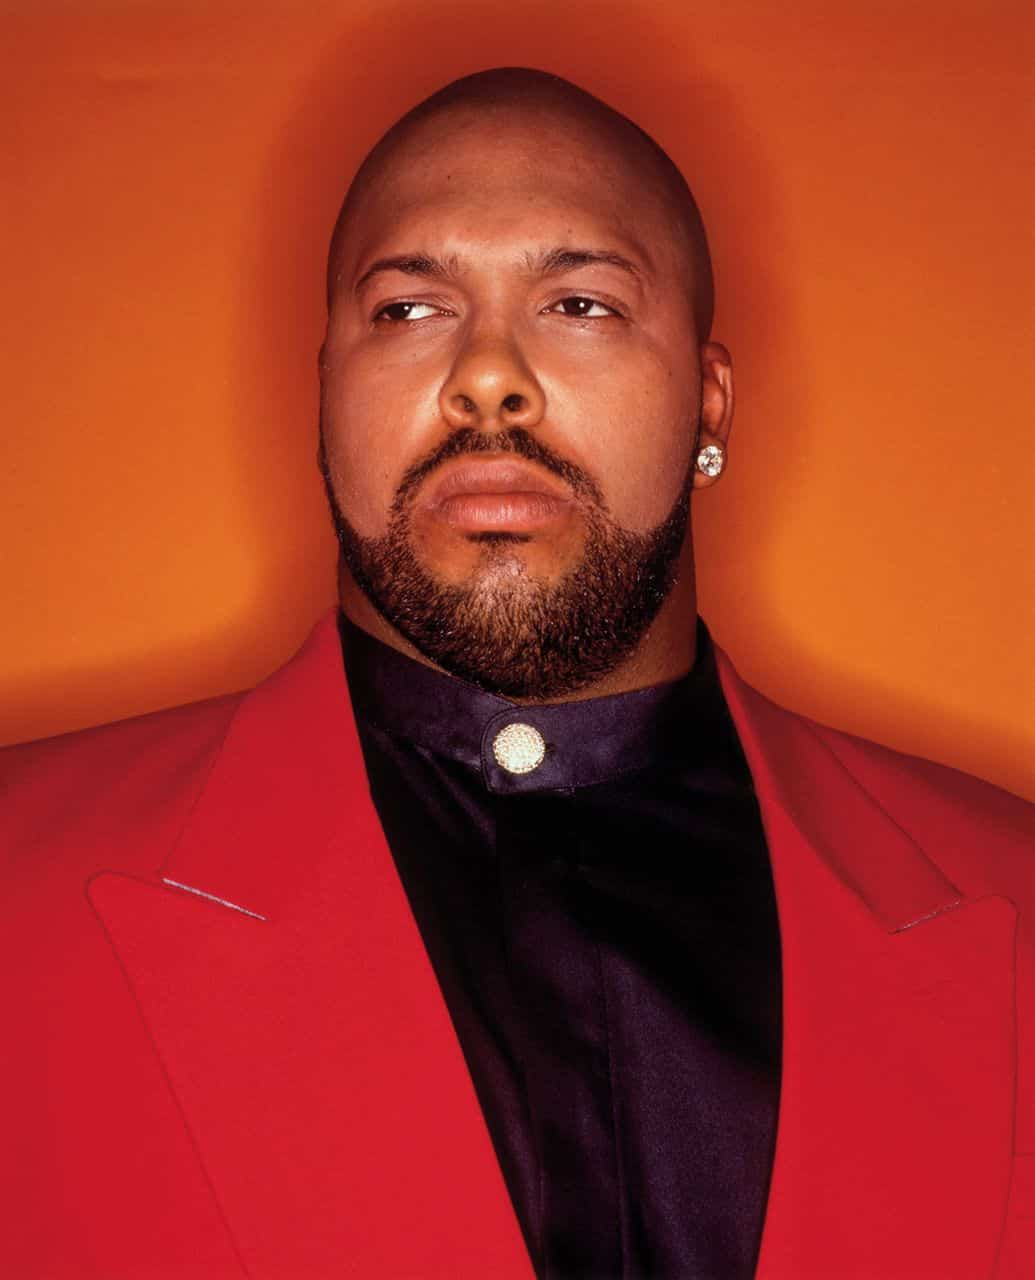 Learn more about the controversial career of Death Row Records cofounder Suge Knight at Biographycom